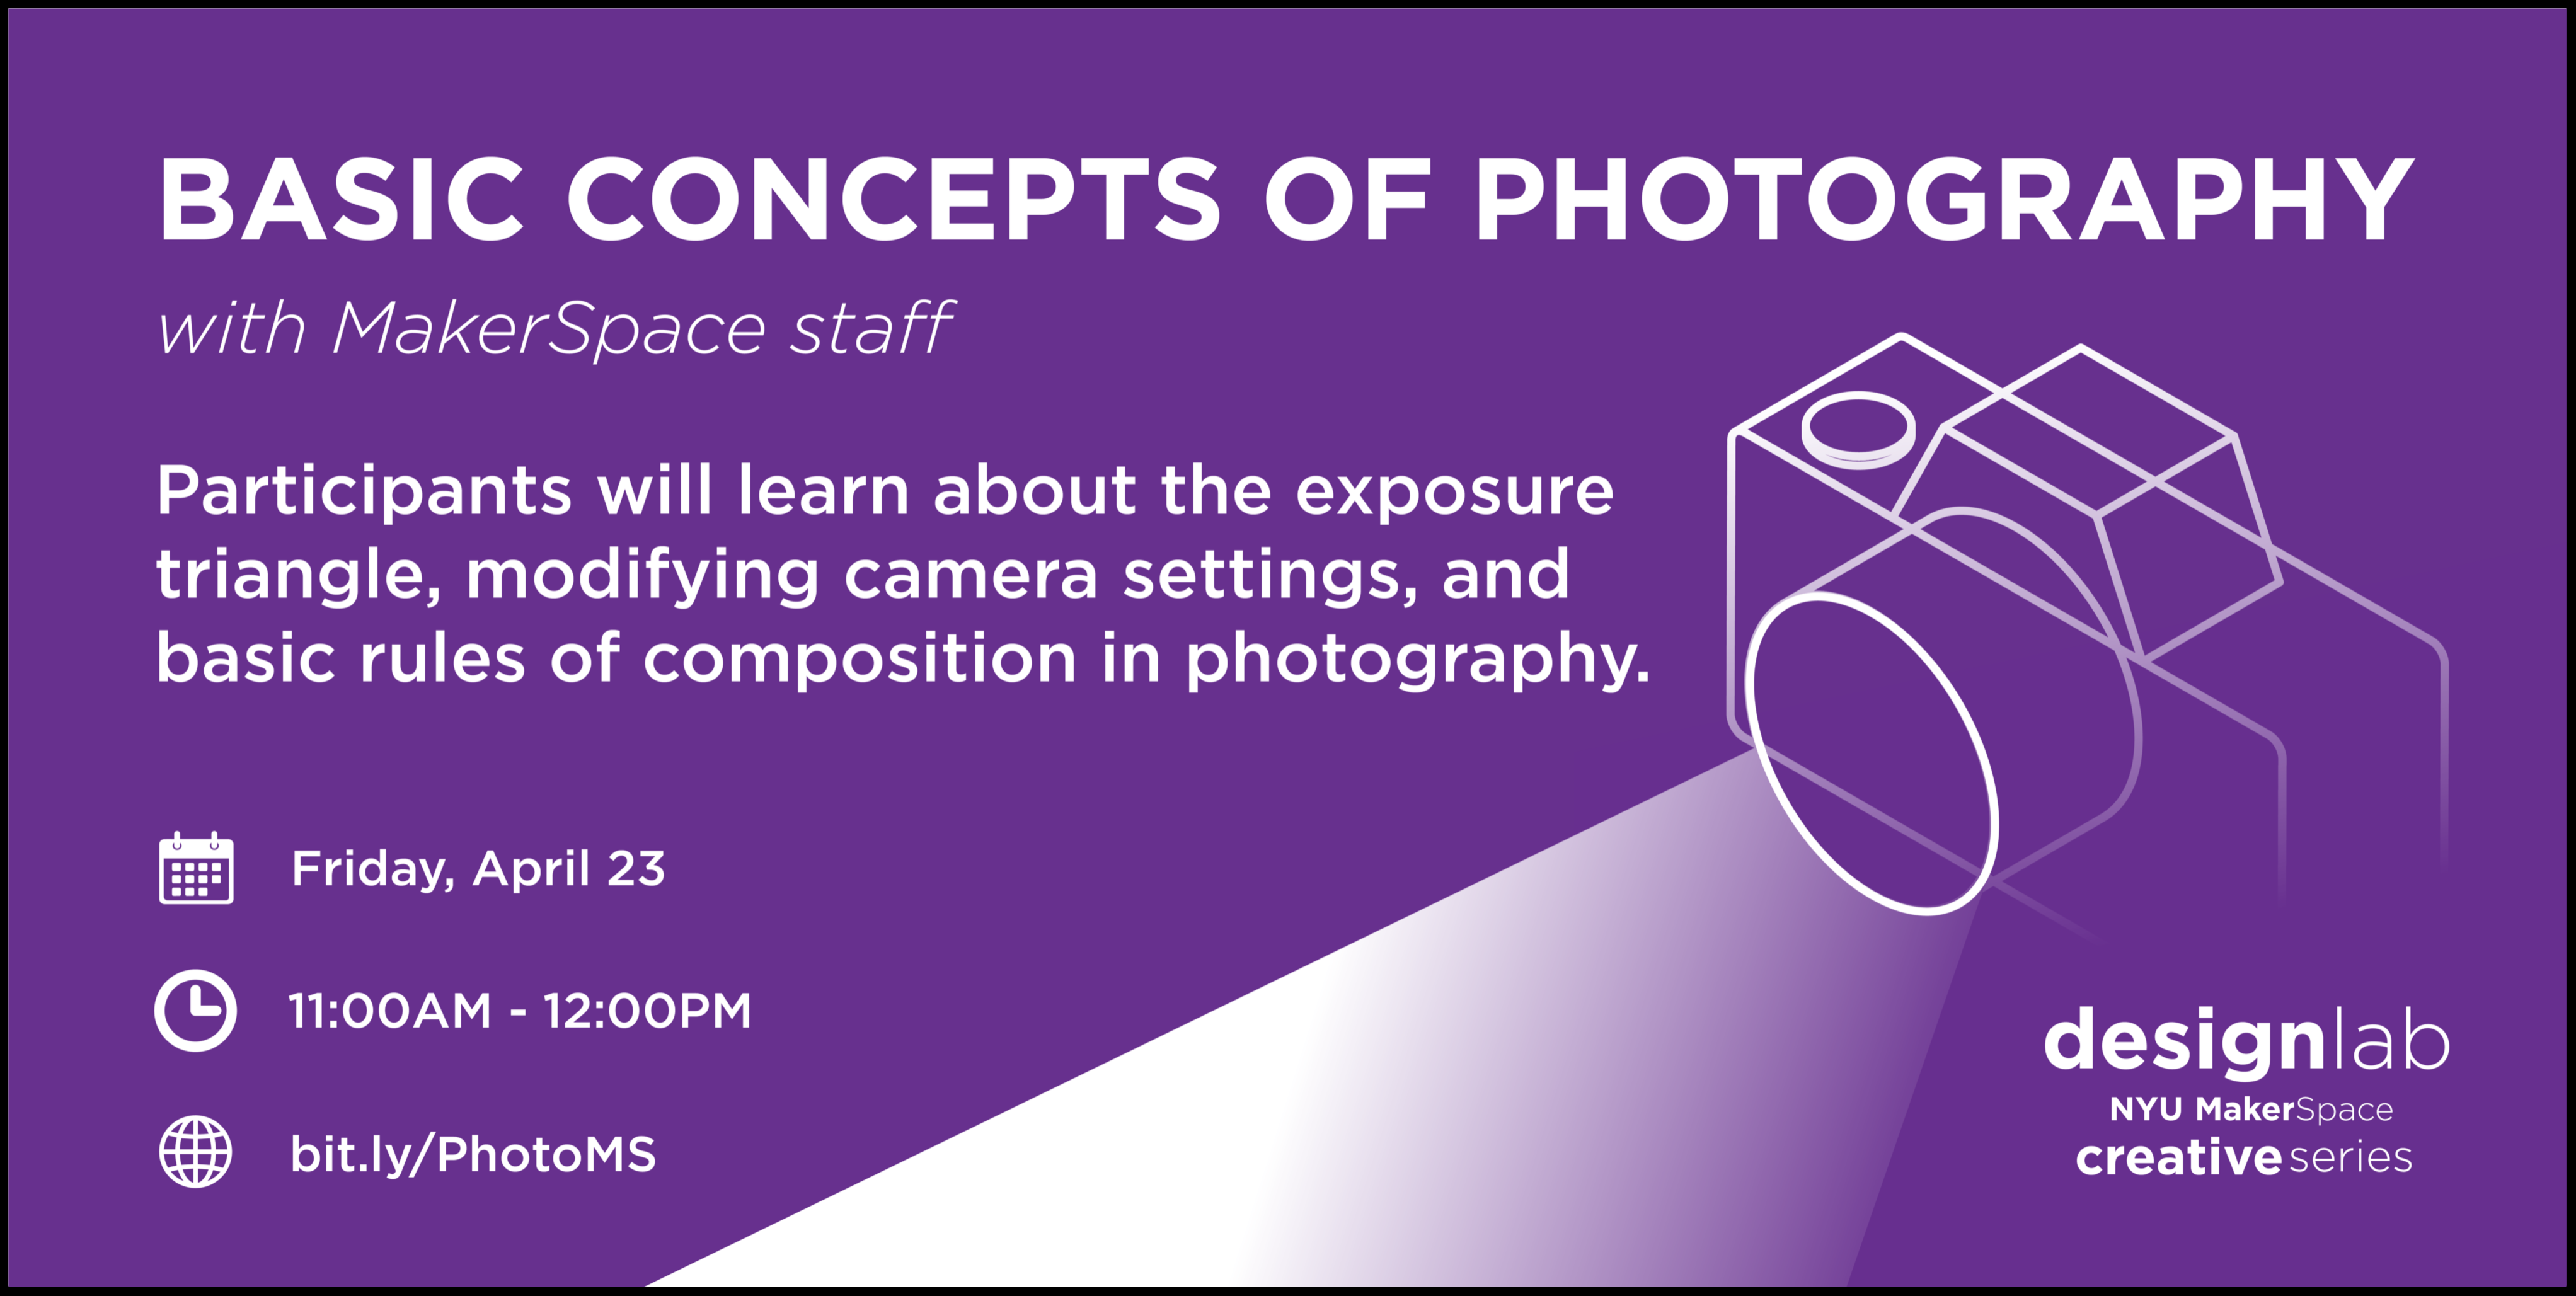 Basic Concepts of Photography Flyer